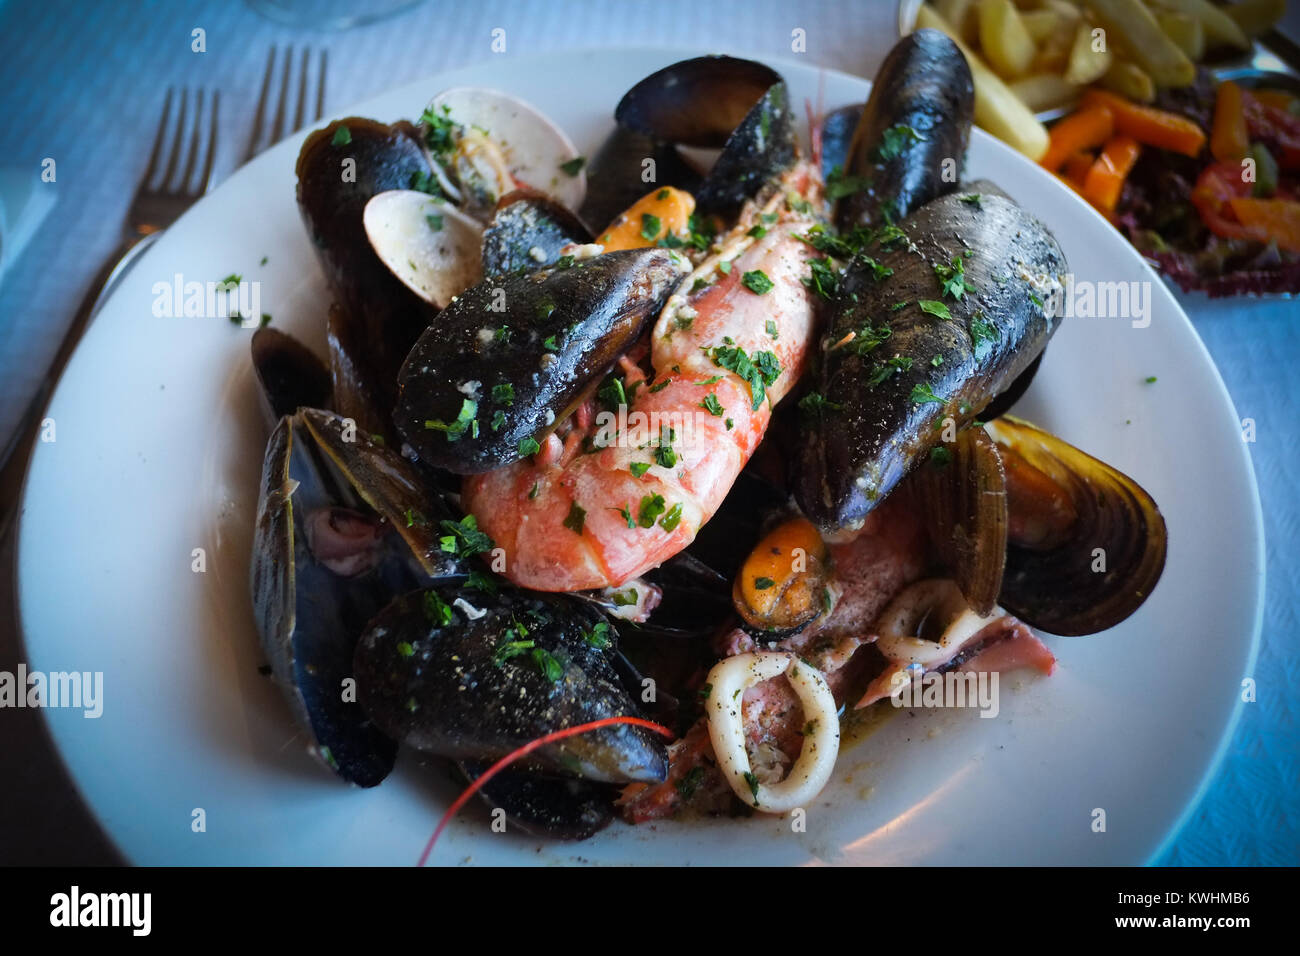 Fresh seafood stew at a restaurant in Mgarr, Gozo, Malta - Stock Image